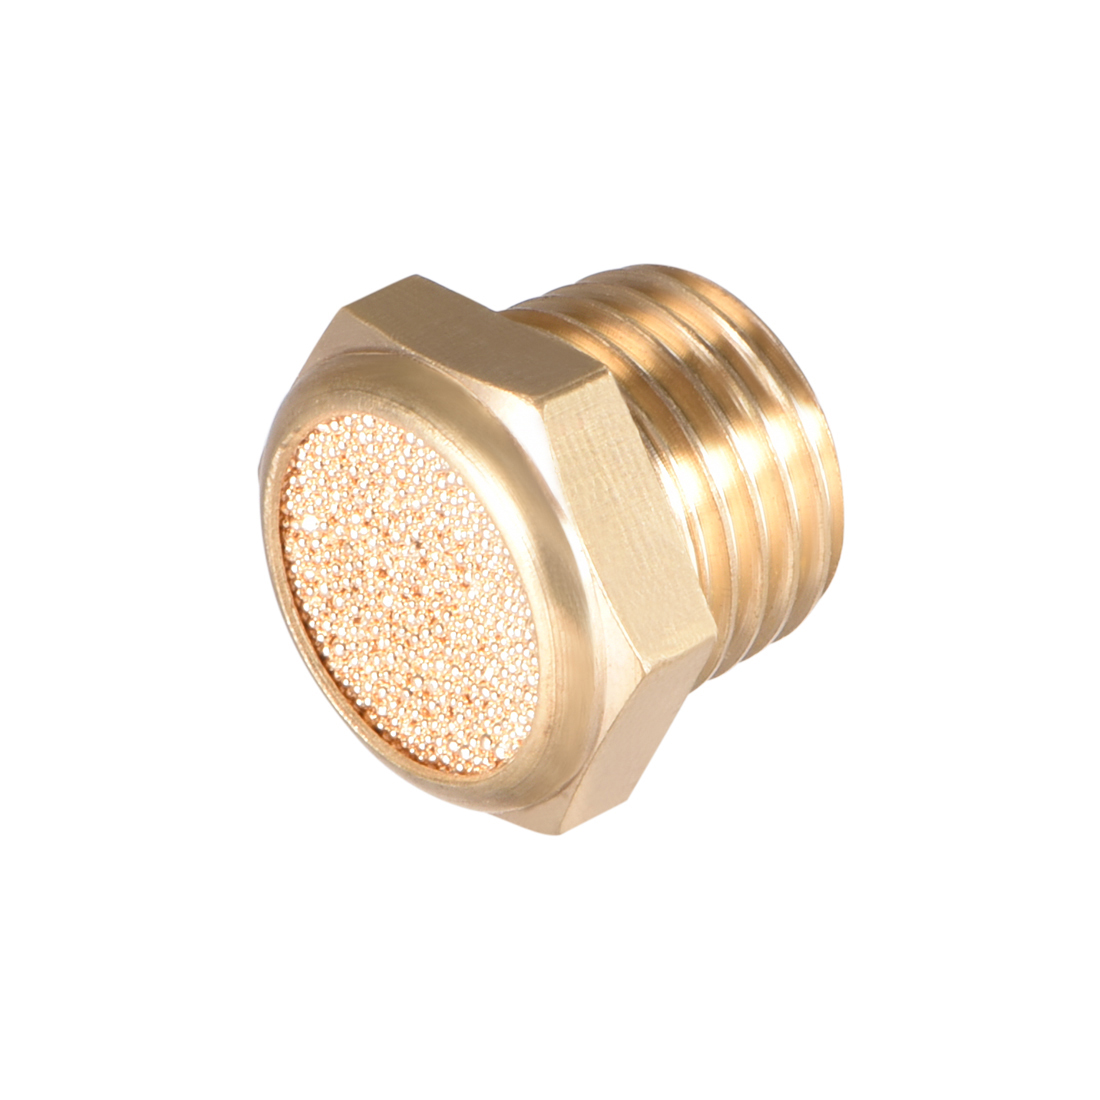 1//4 inch PT Male Thread 19//32 inch Hexagonal sintered air Pneumatic Bronze Silencer with Brass Body protruding 10 Pieces Brass Exhaust Silencer